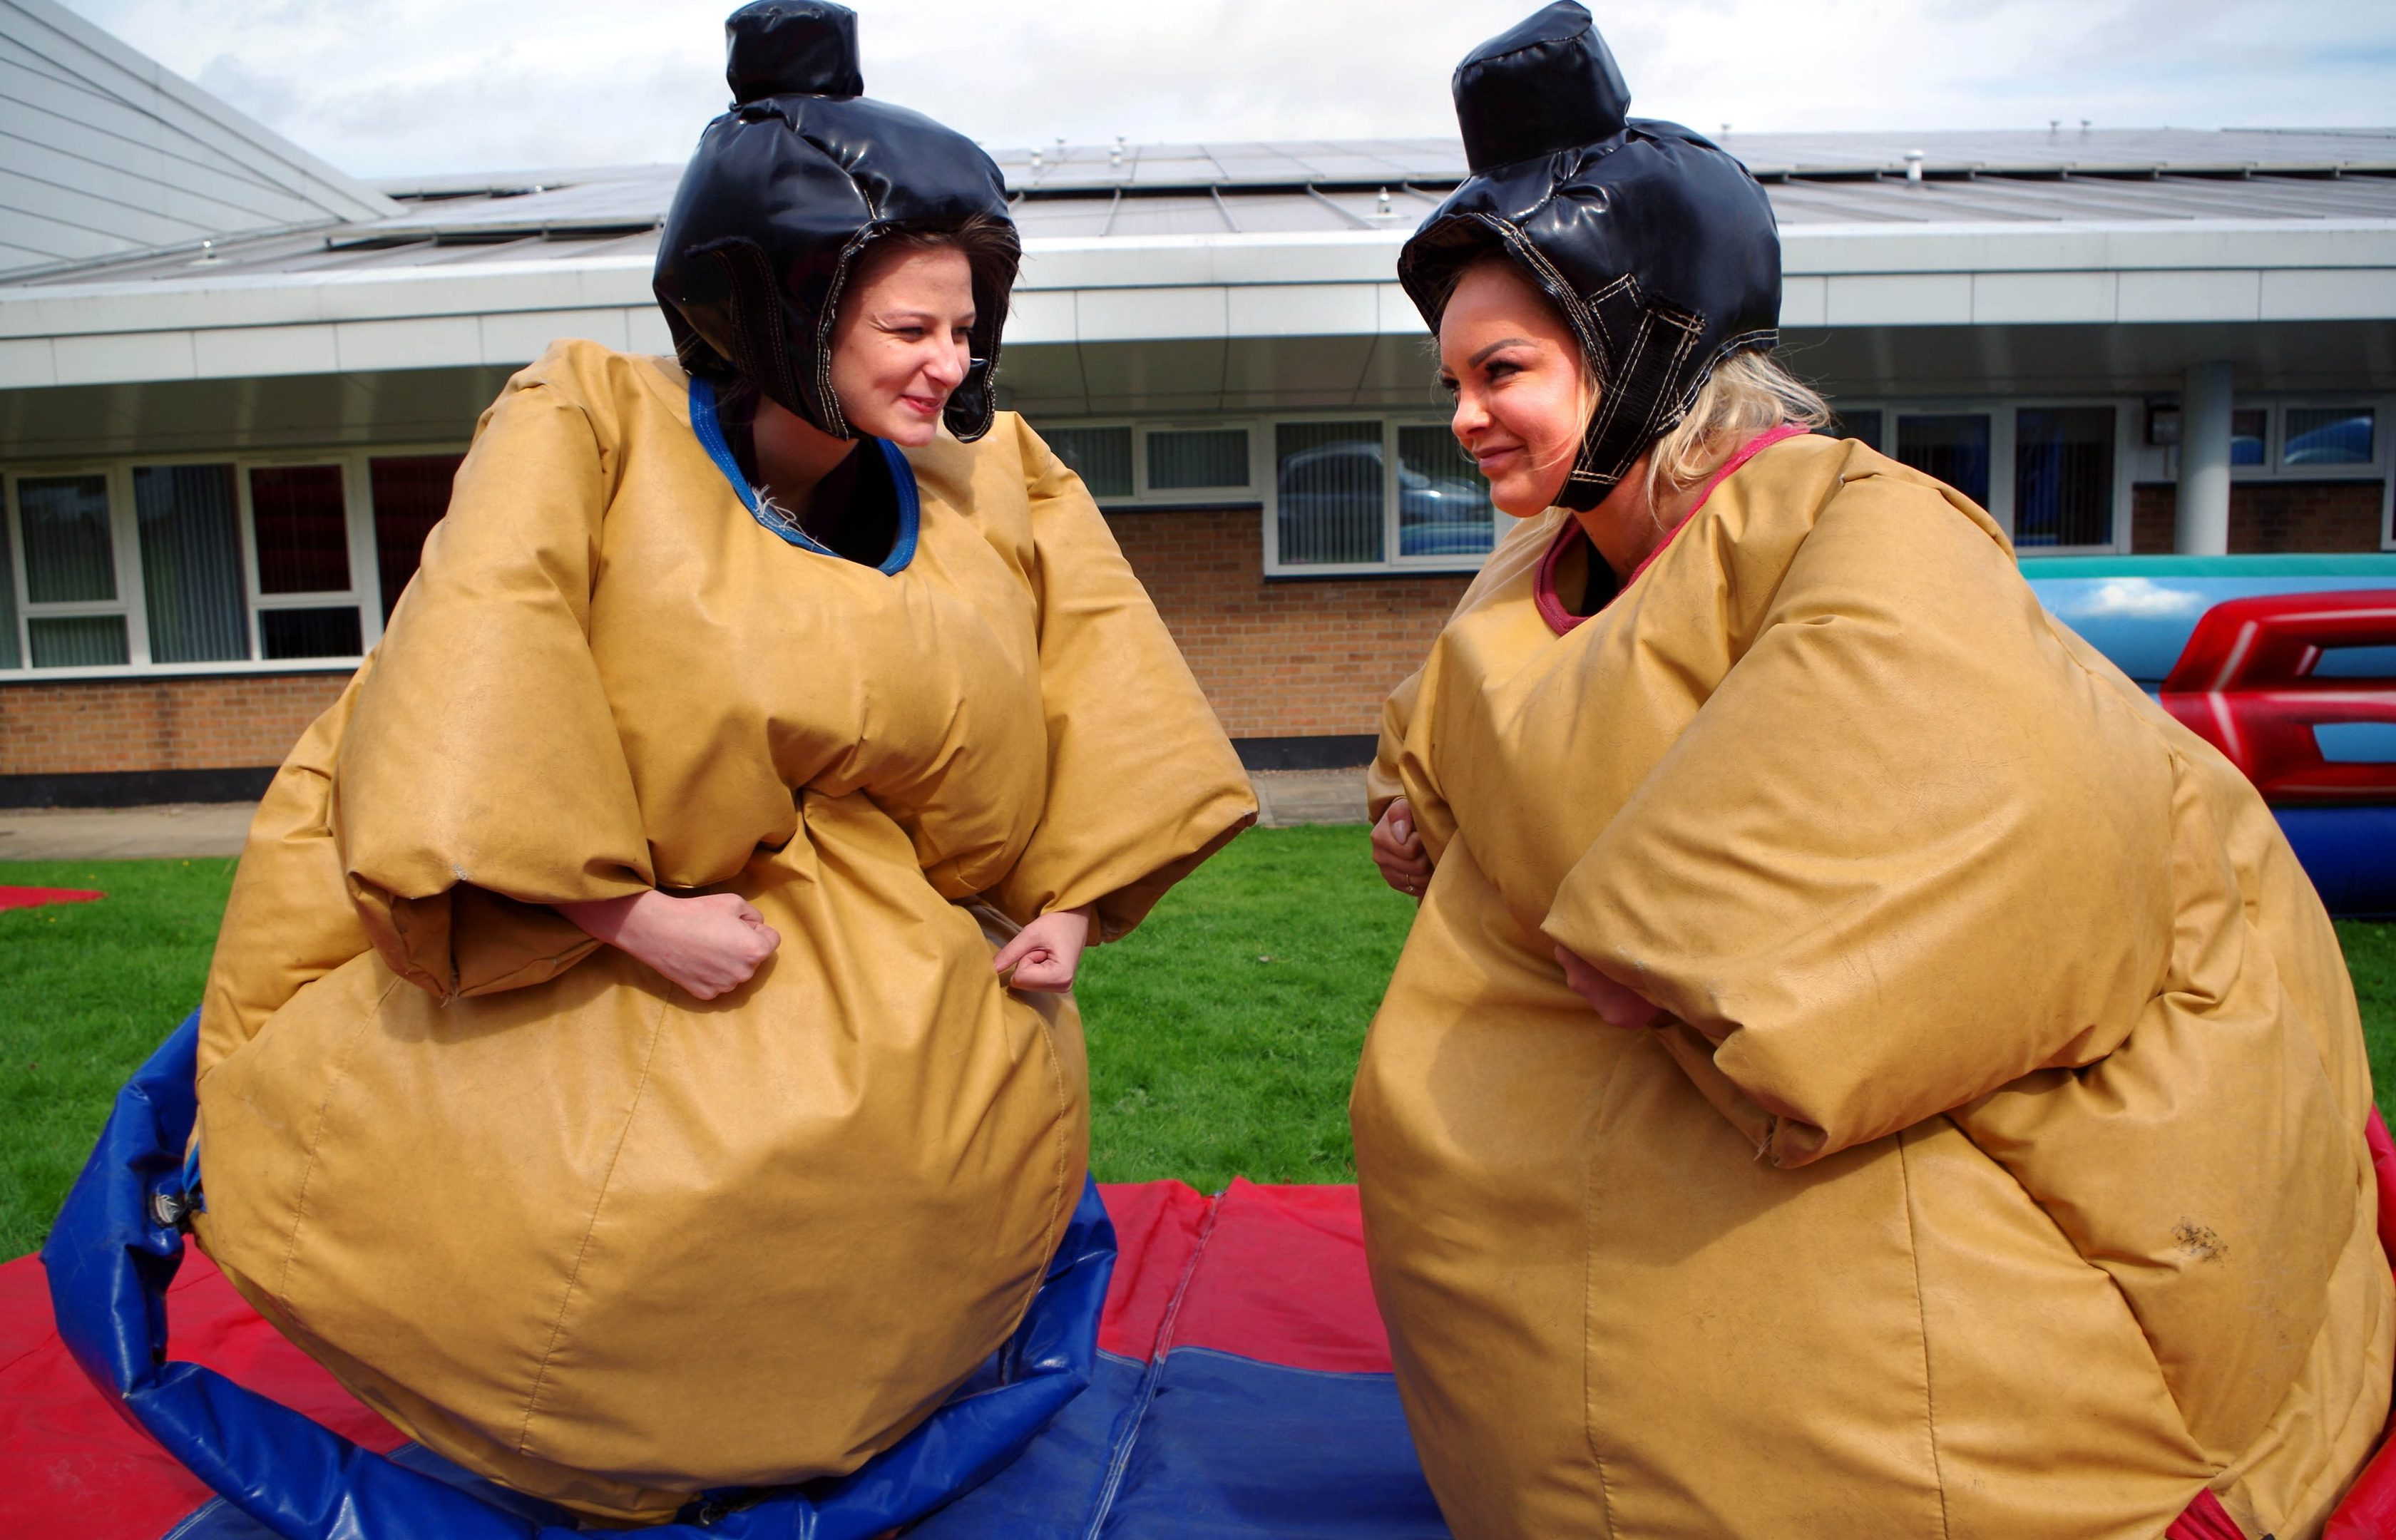 The freshers fun has started for D&A College students Amy Farrel and Wiktoria Skuczen as they enjoyed a sumo wrestling-themed ice-breaker.